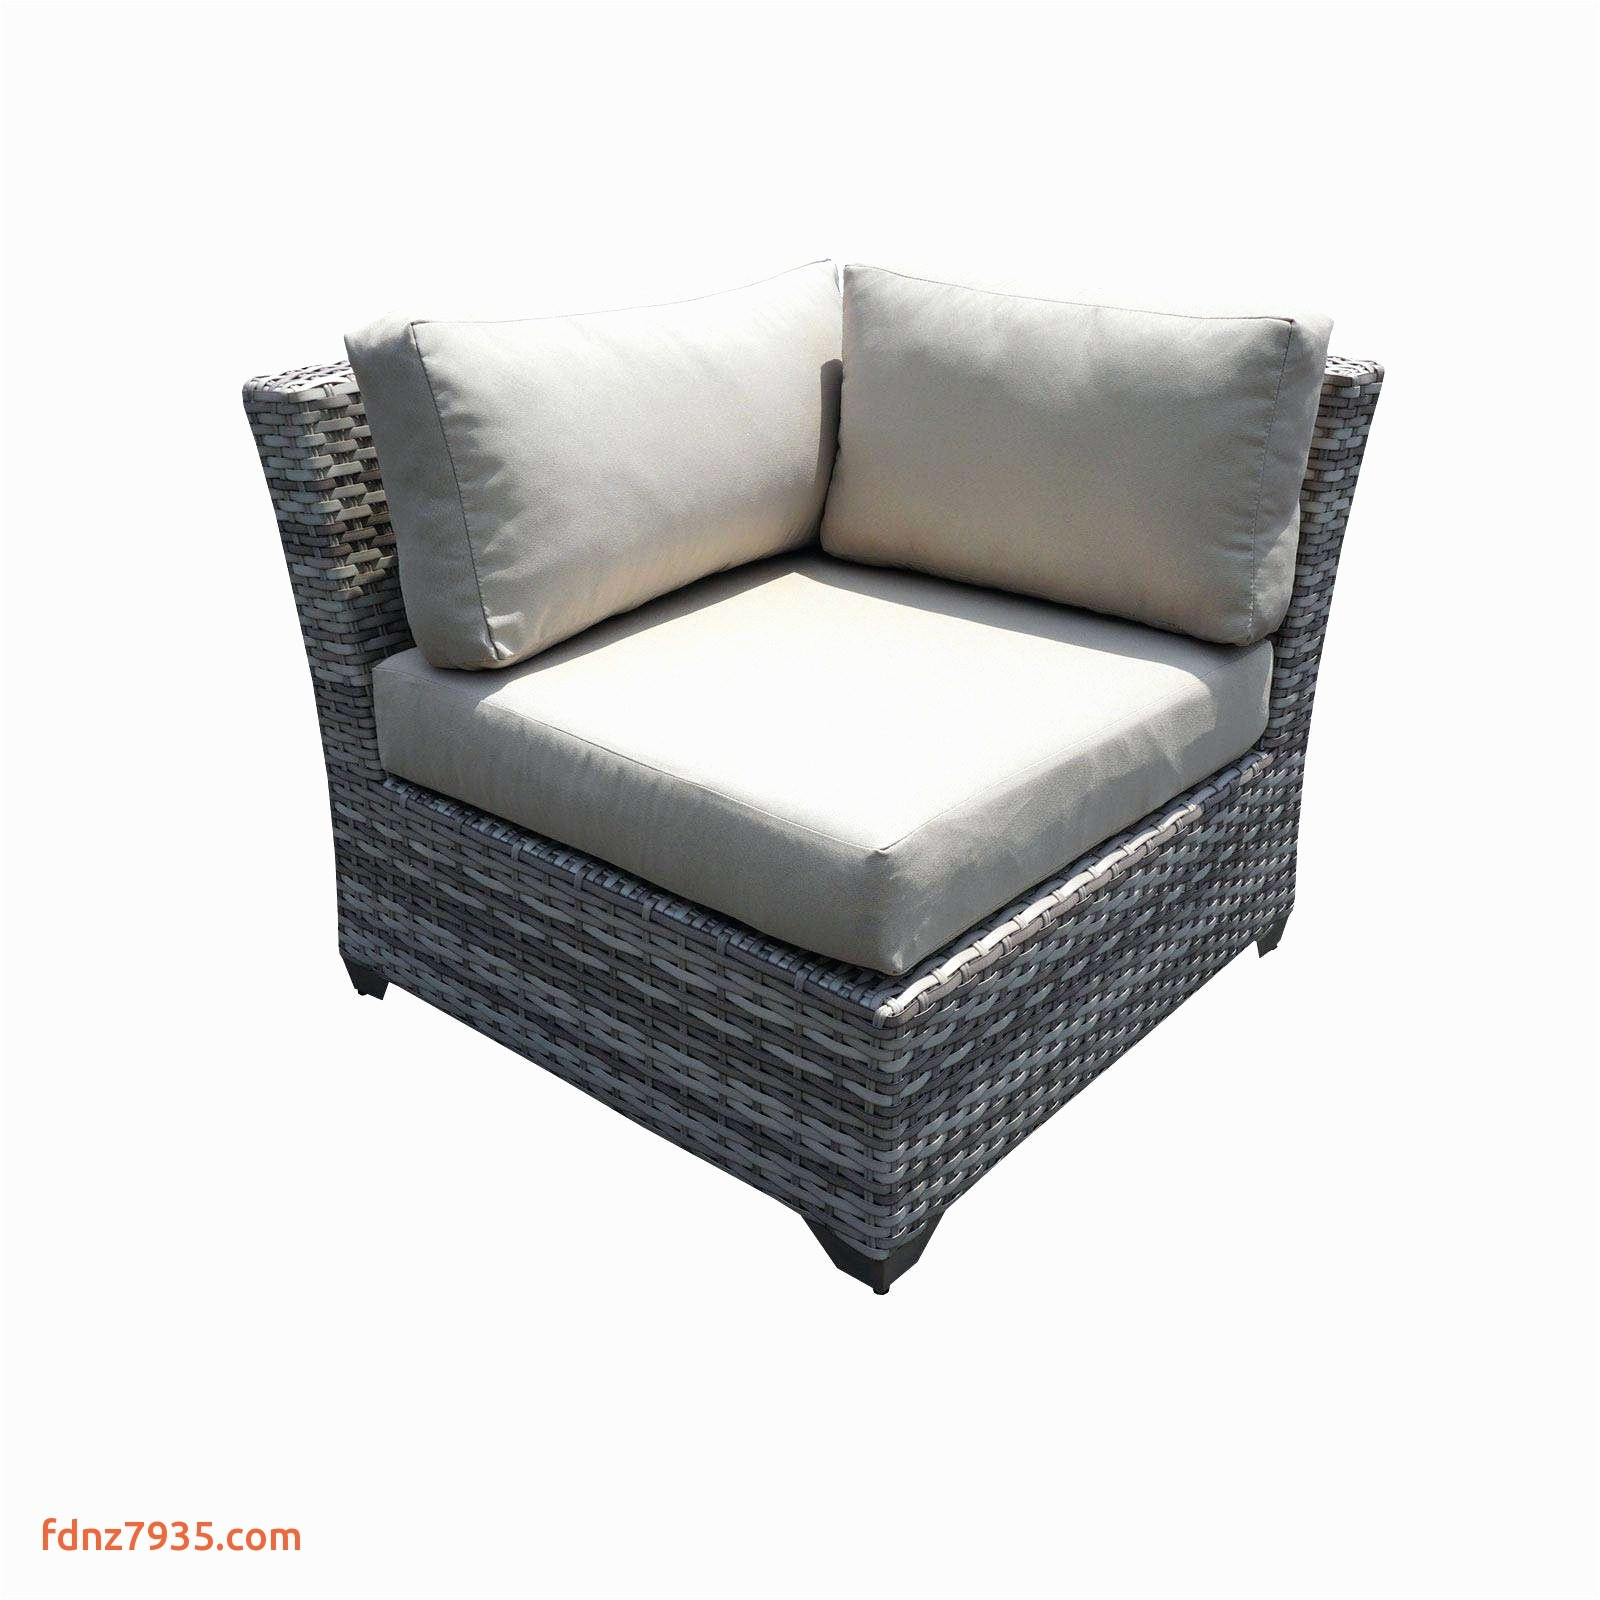 lawn furniture cushions awesome wicker outdoor sofa 0d patio chairs scheme replacement cushions for walmart